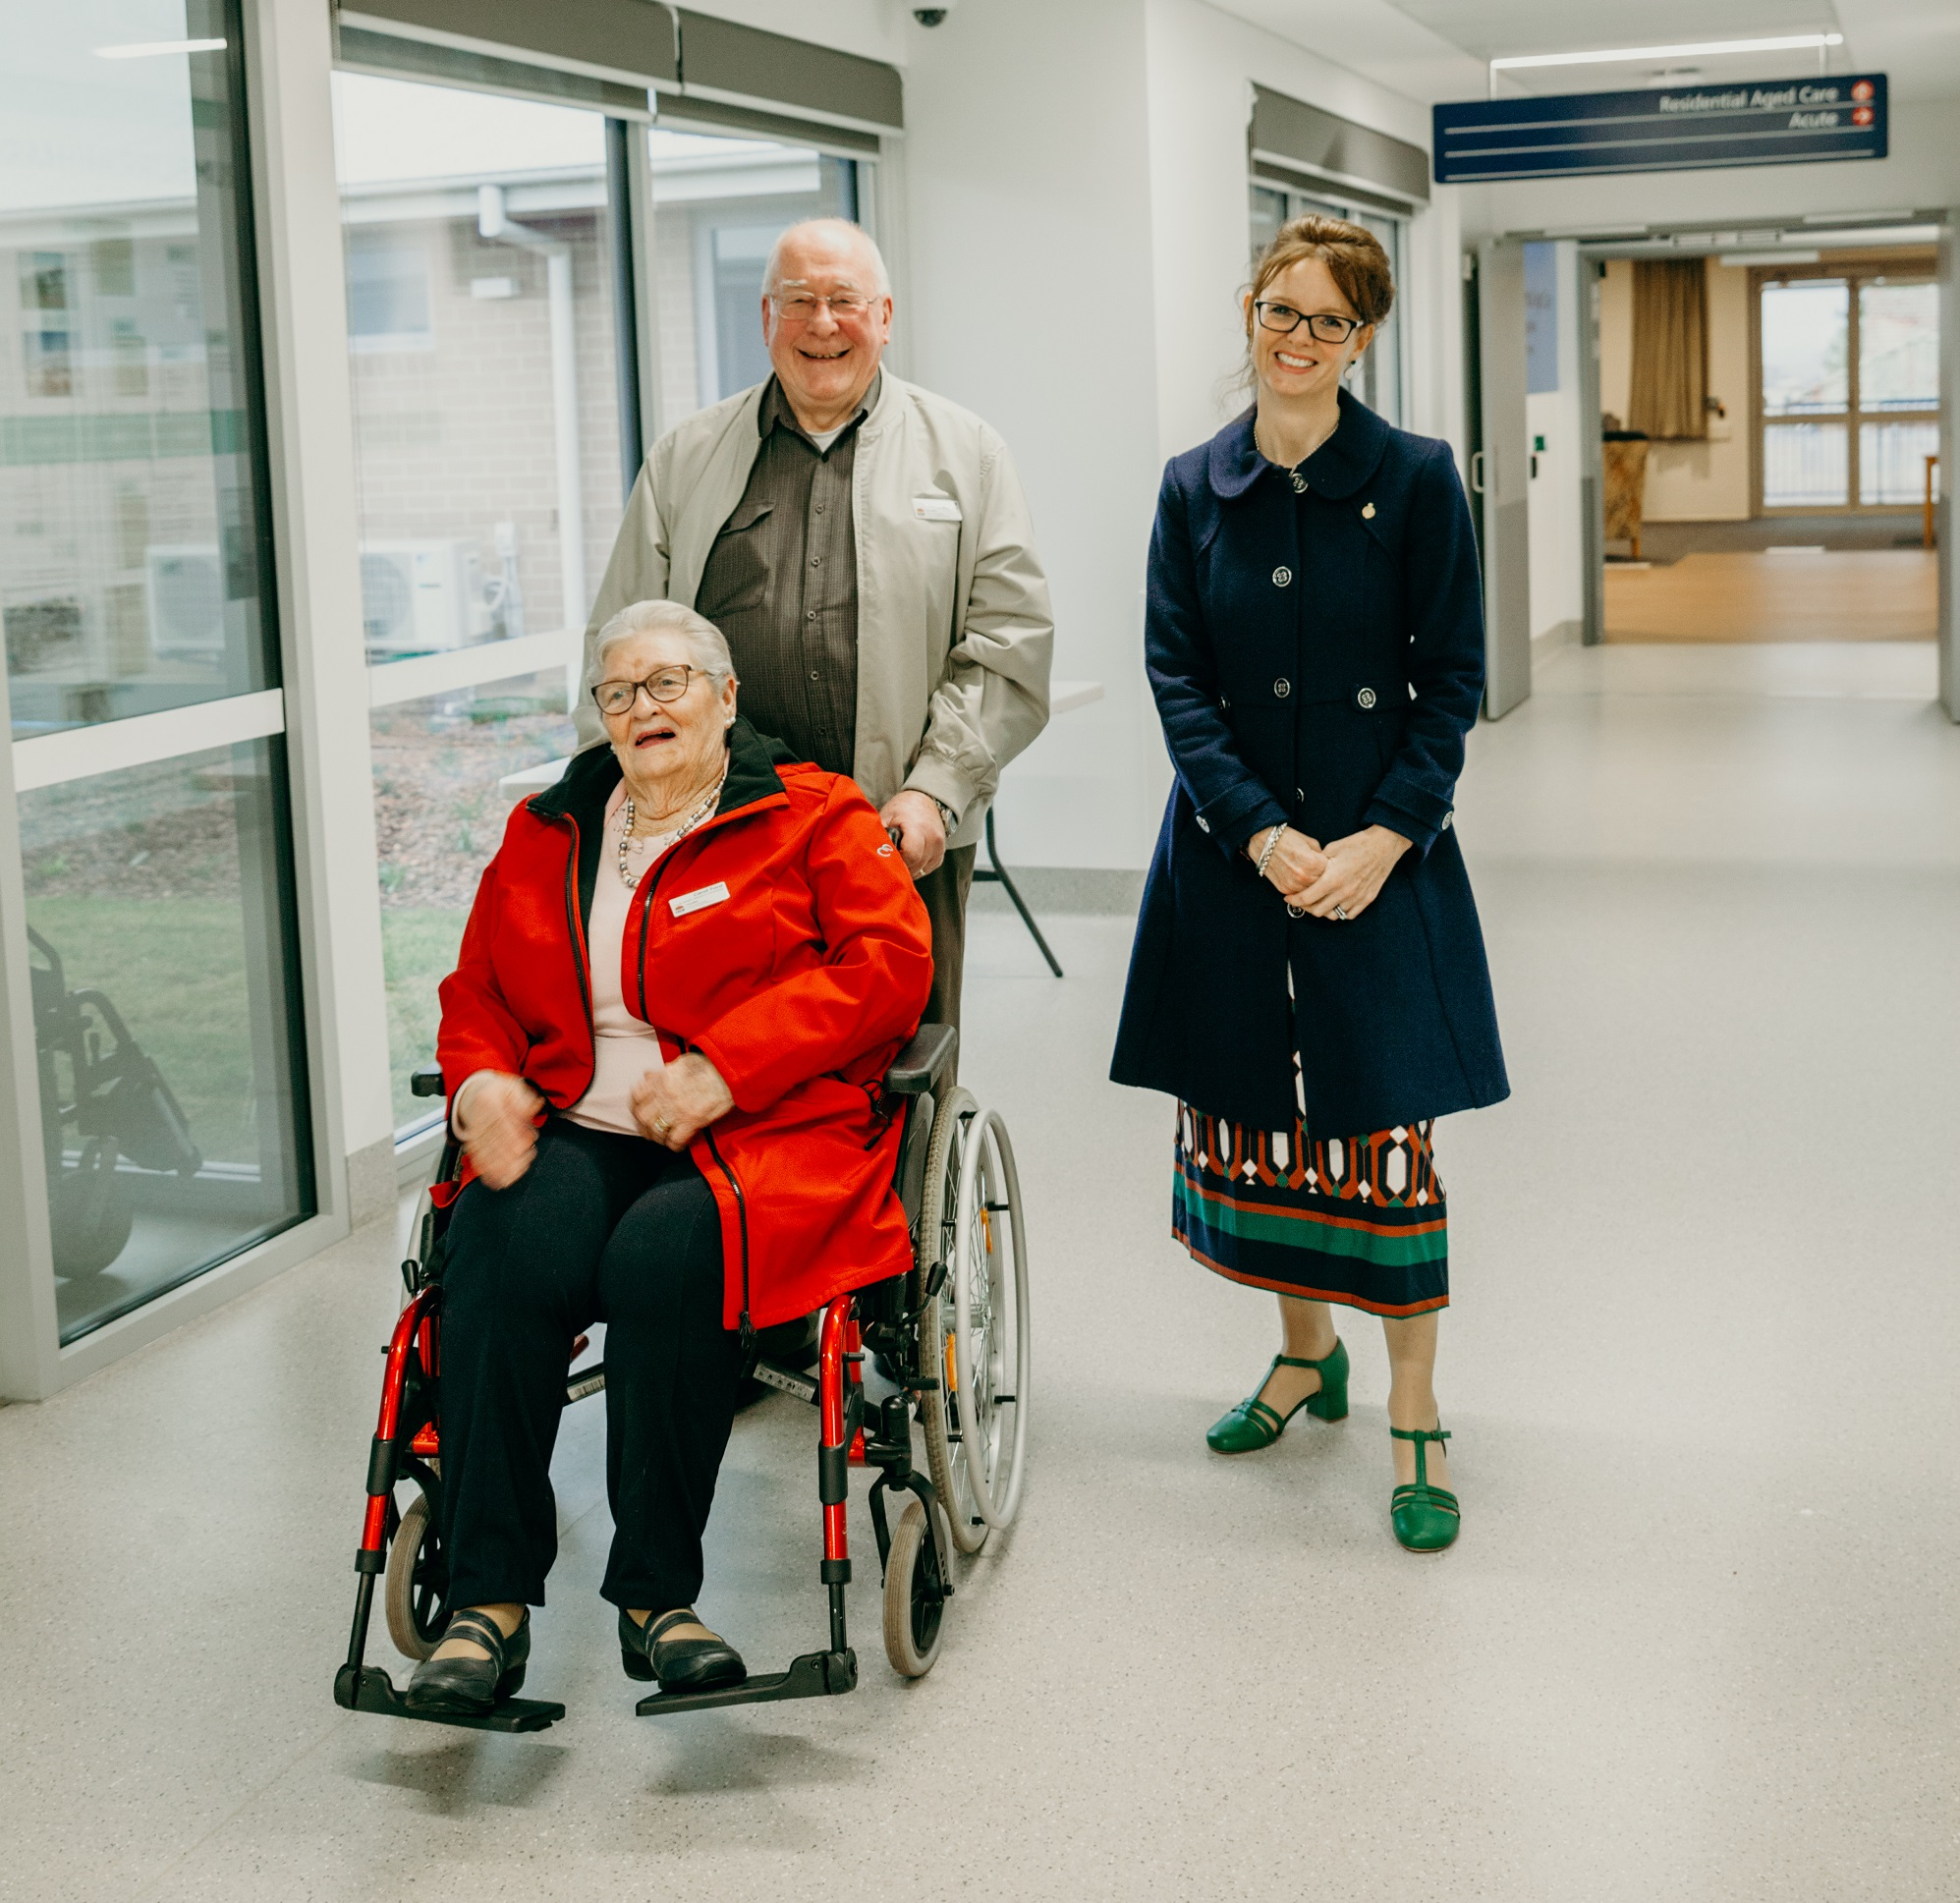 A woman in a wheelchair and an elderly man pushing her stand next to Steph Cooke in a hospital corridor.